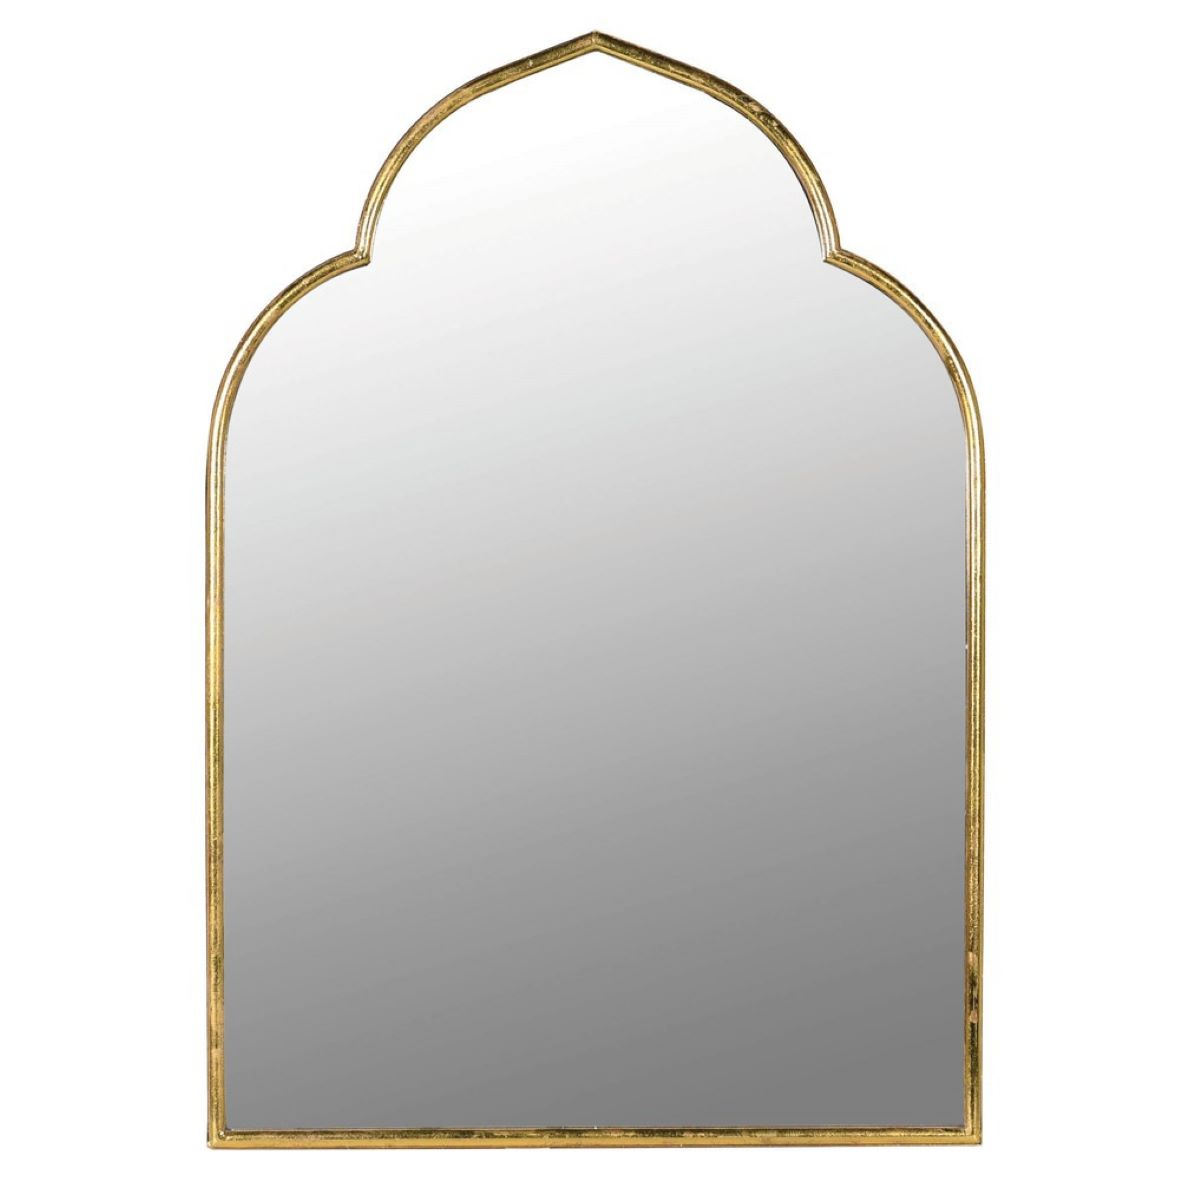 Haygen - MOROCCAN SHAPED MIRROR